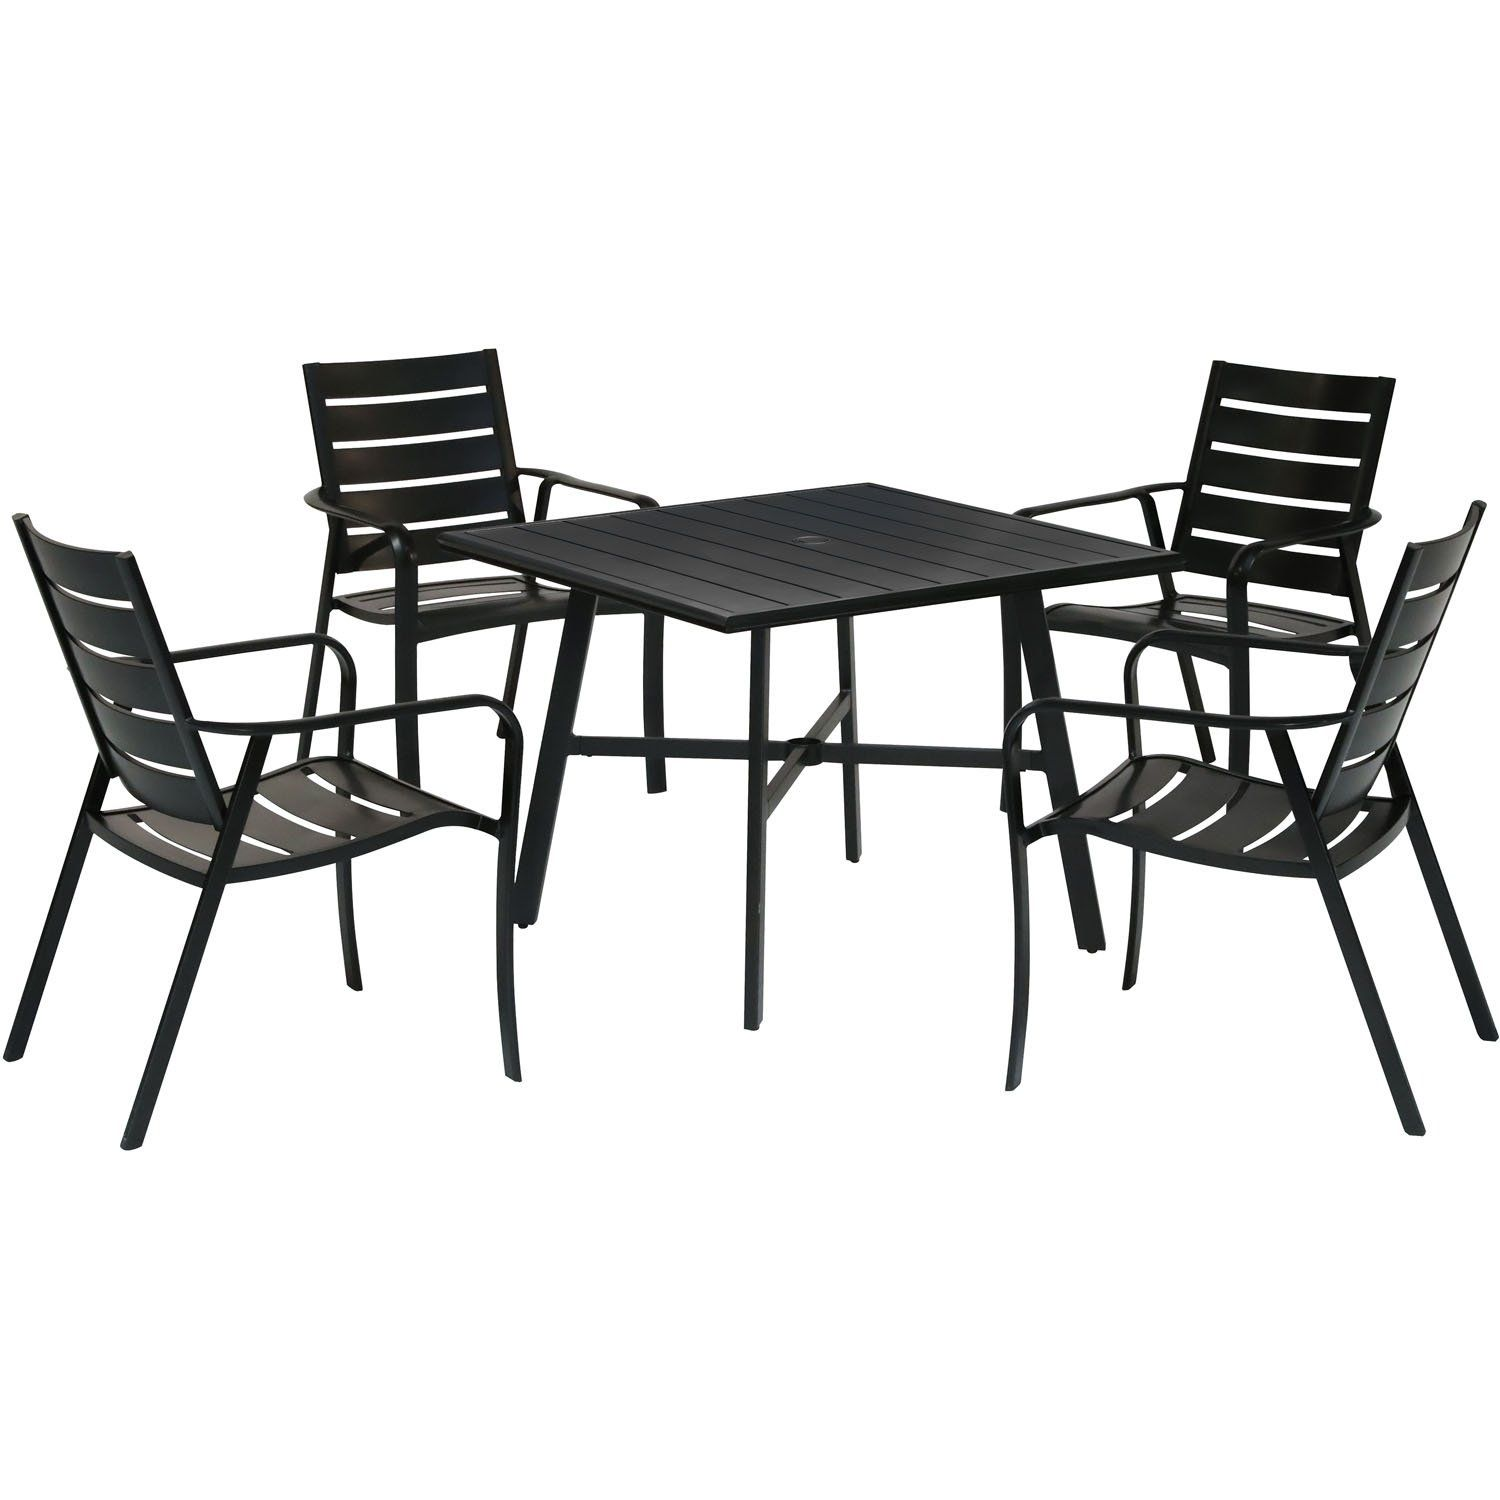 Hanover Cortino 5 Piece Commercial Grade Patio Dining Set With 4